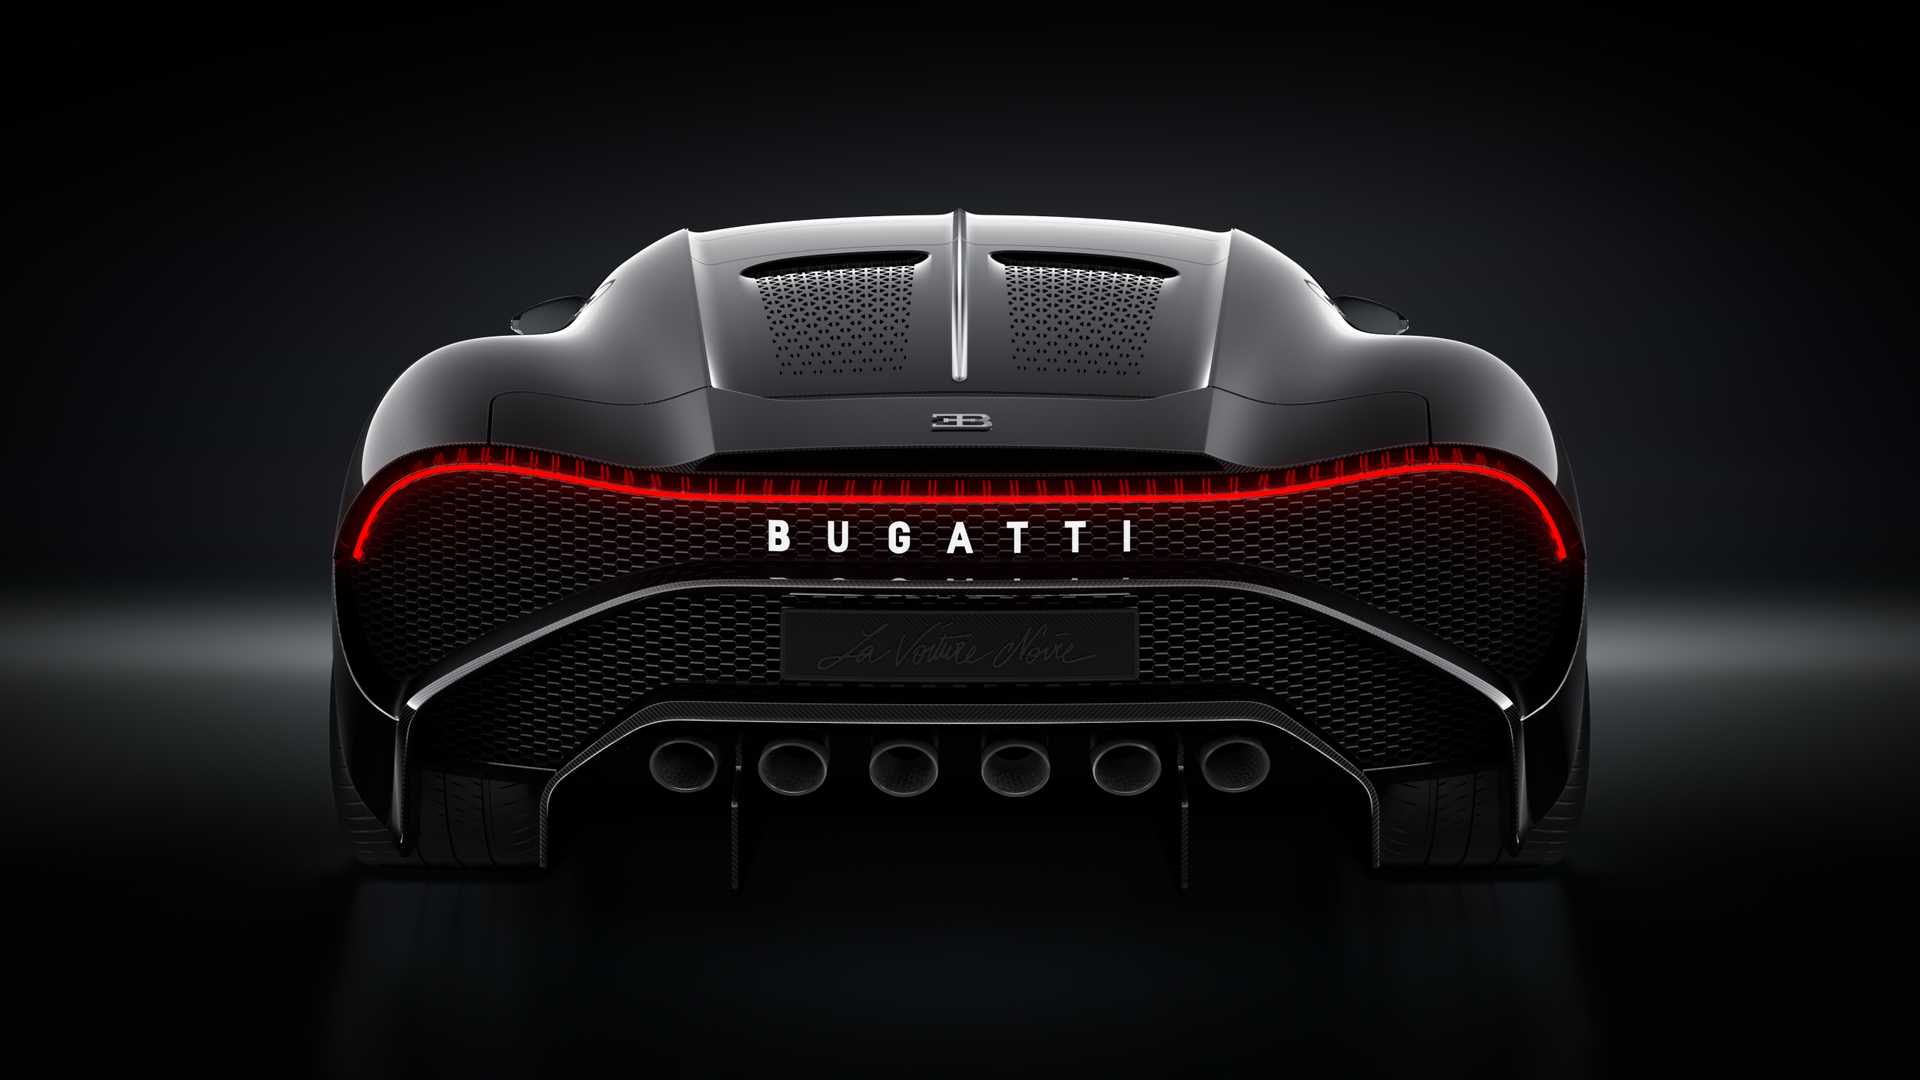 Bugatti La Voiture Noire, Healthy Living + Travel, Rear